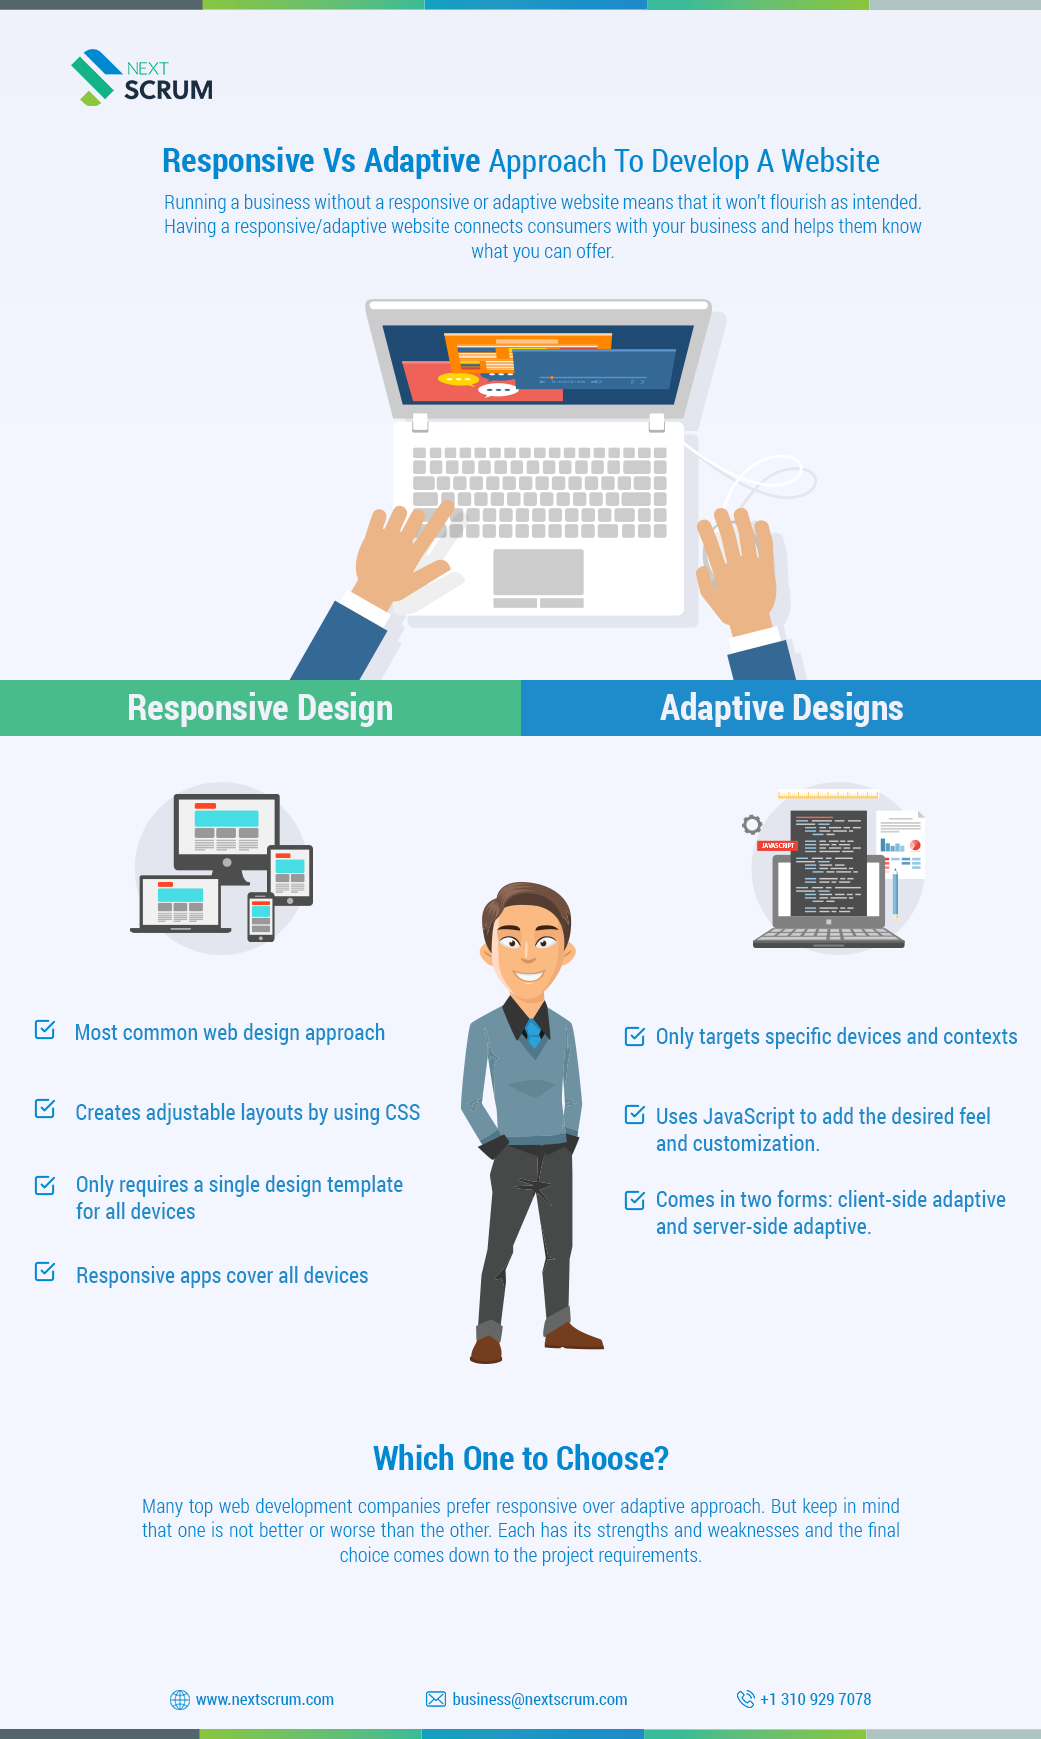 Responsive Vs Adaptive Approaches to Web Development